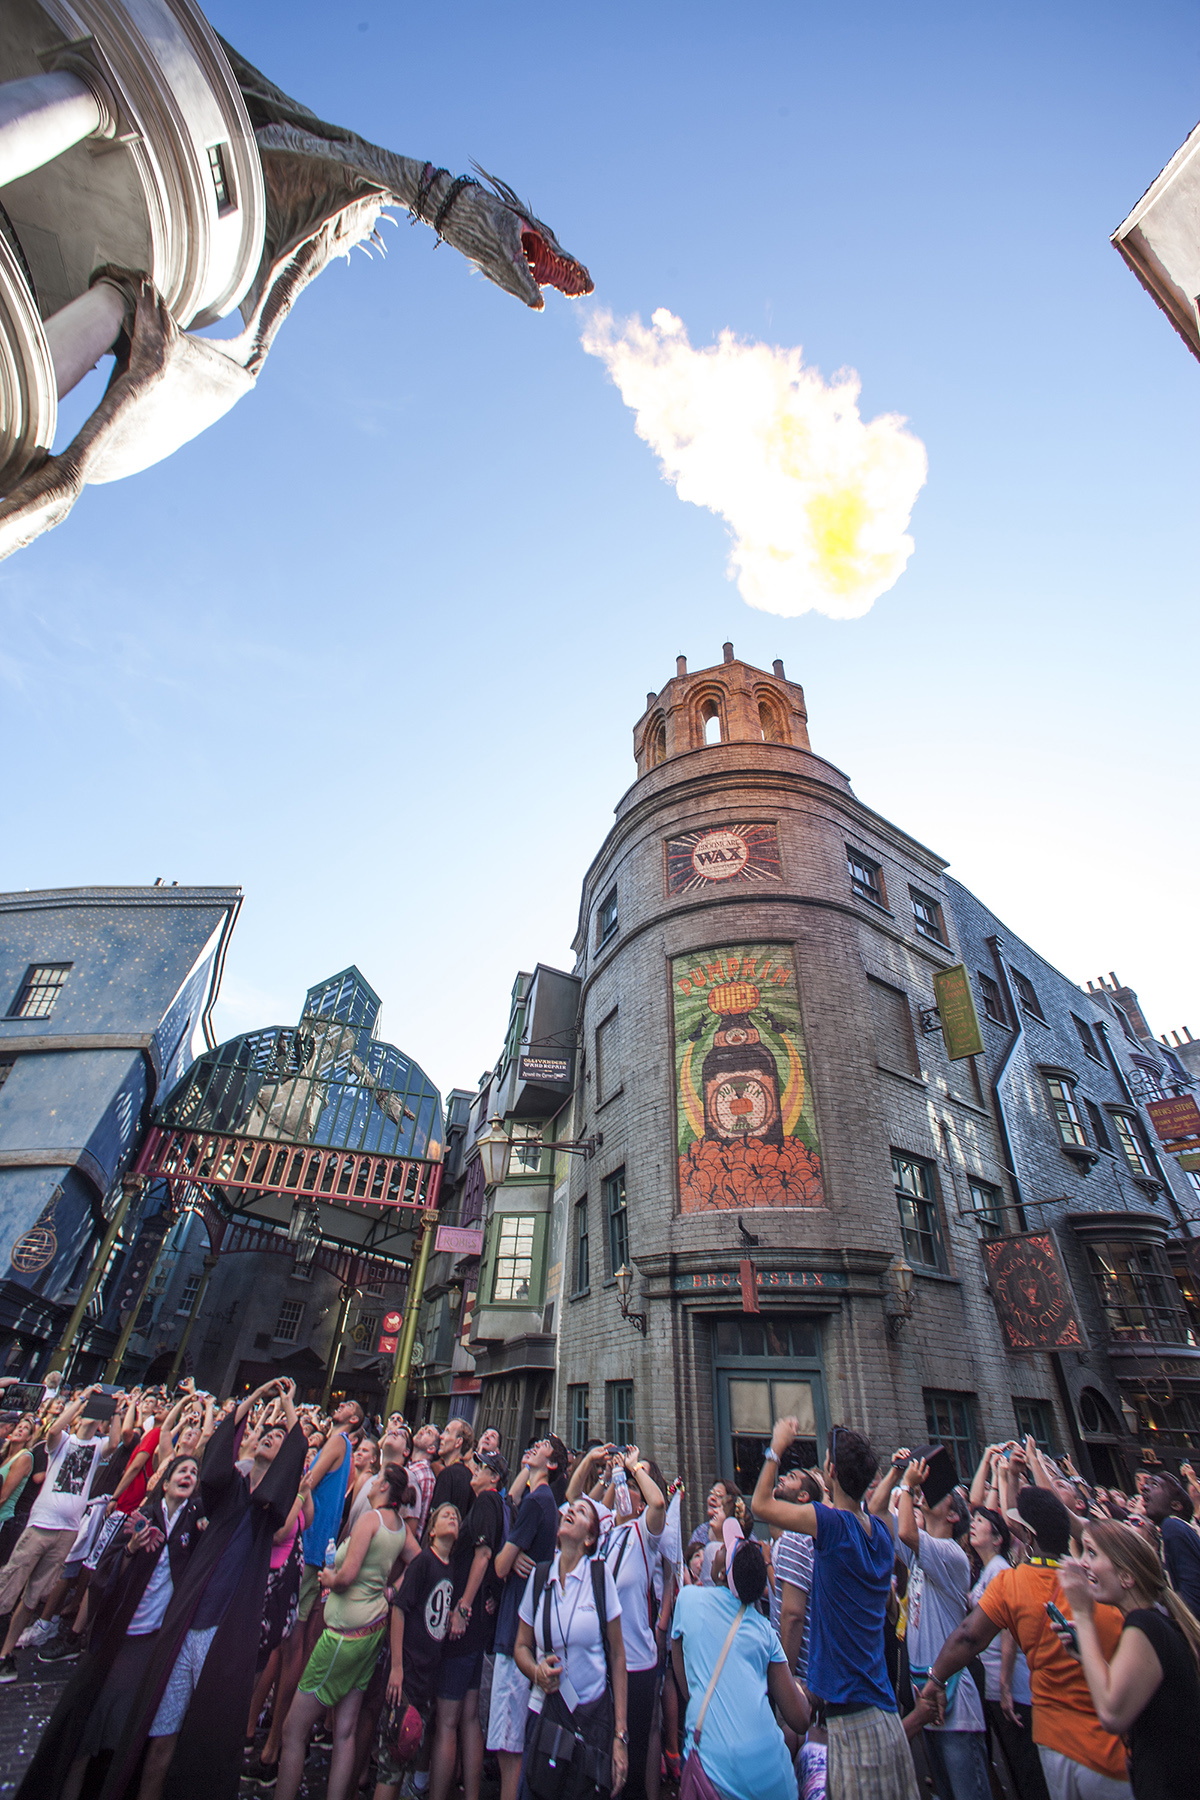 Wizarding World of Harry Potter Diagon Alley Scene